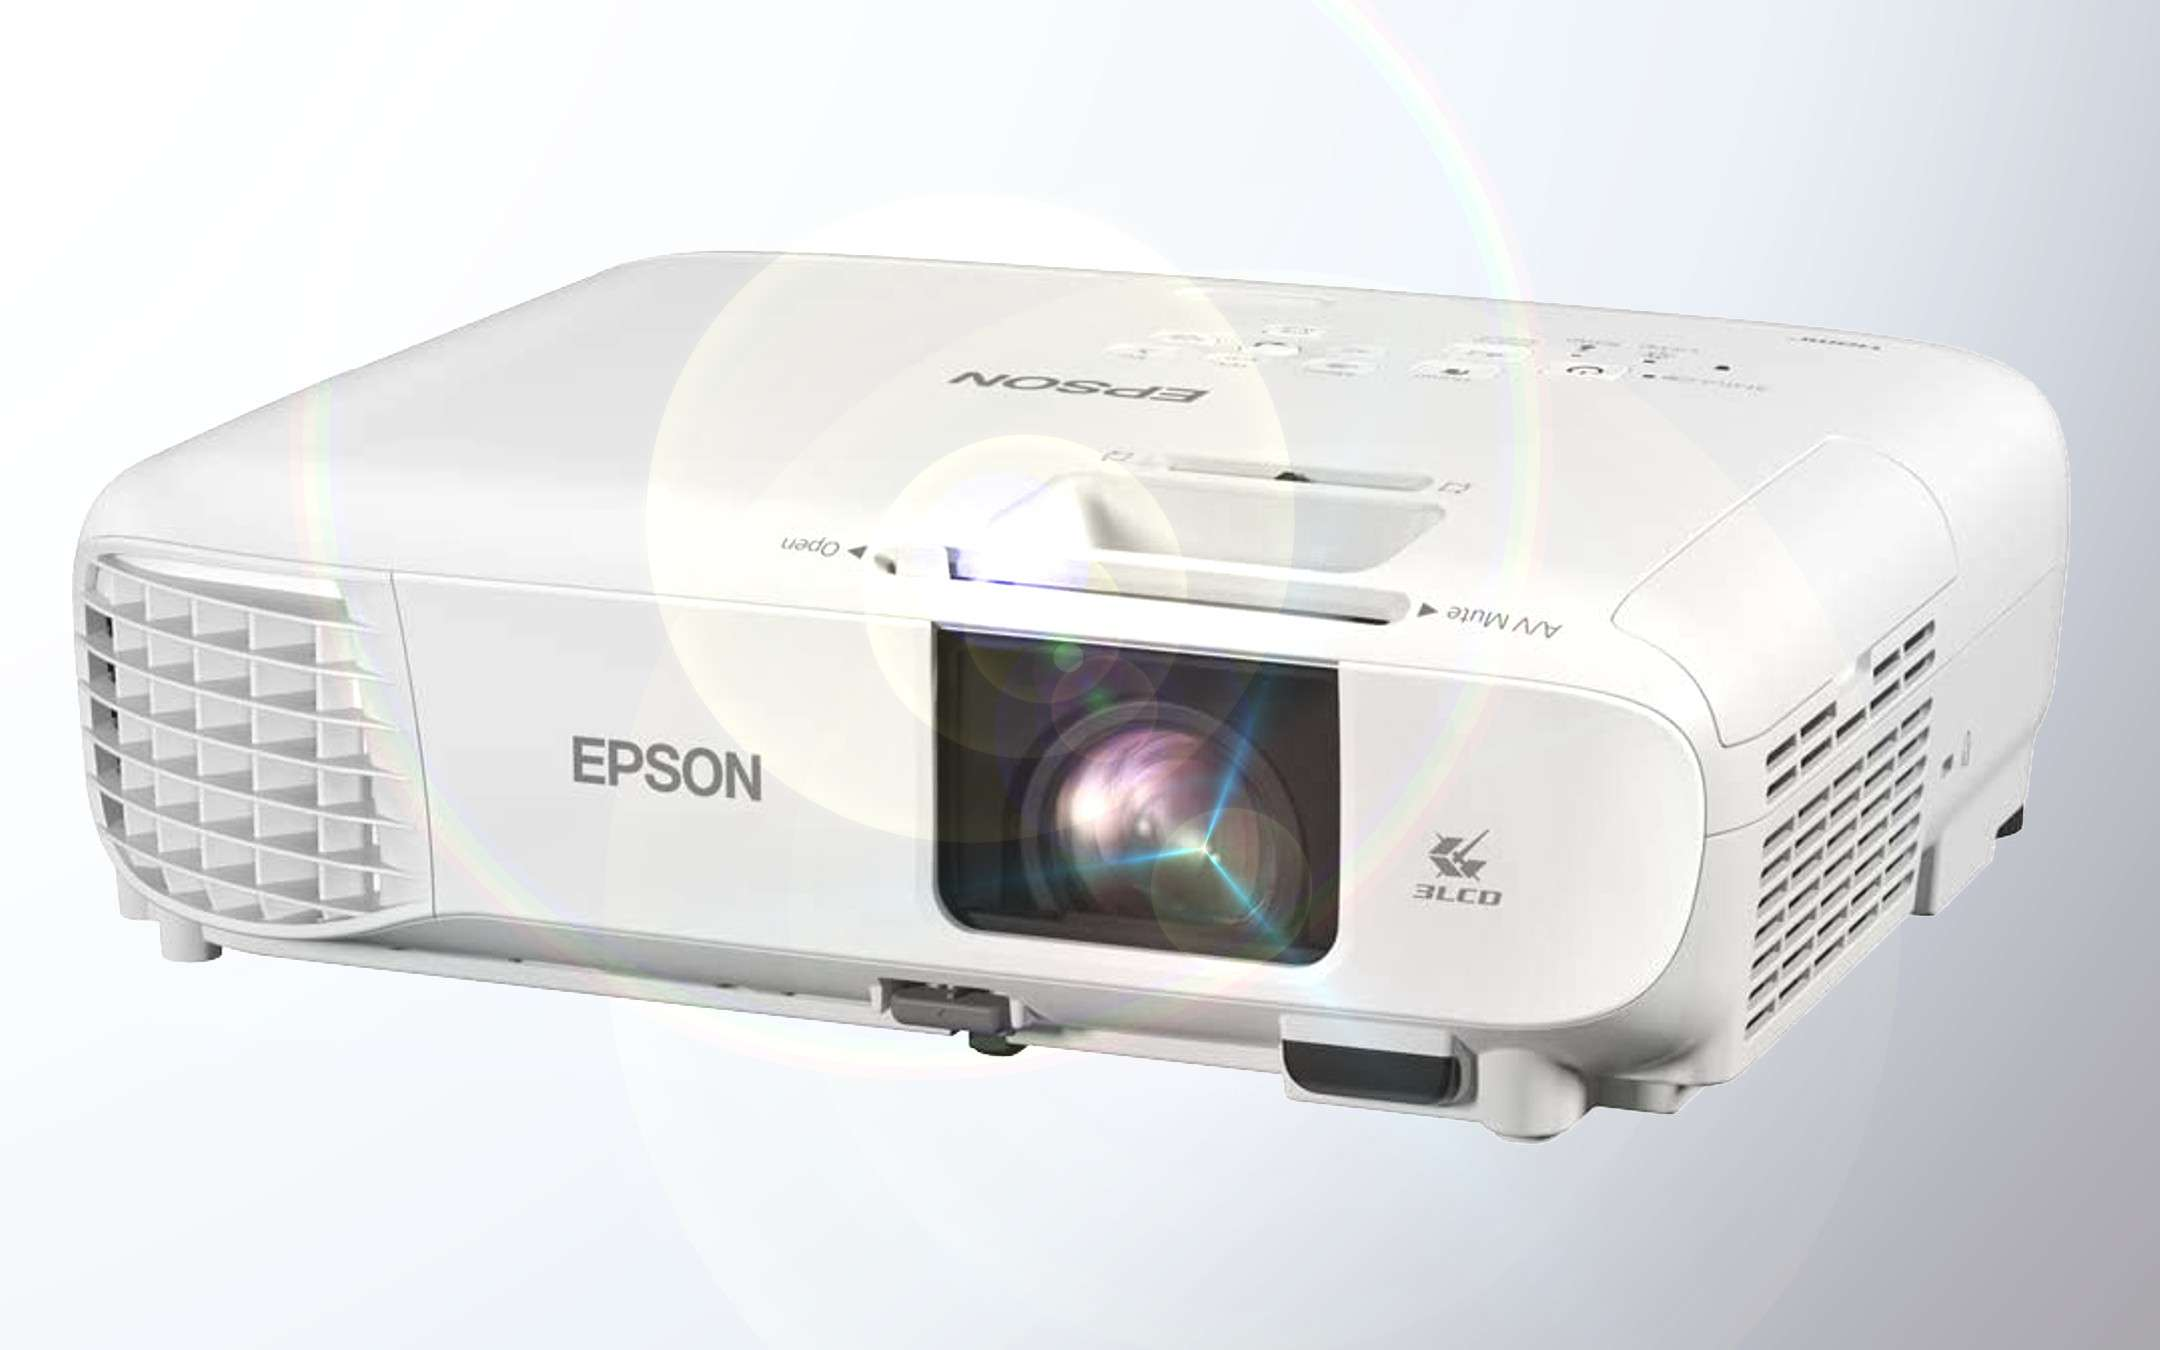 Epson 16000: 1 projector, down the price of 140 euros